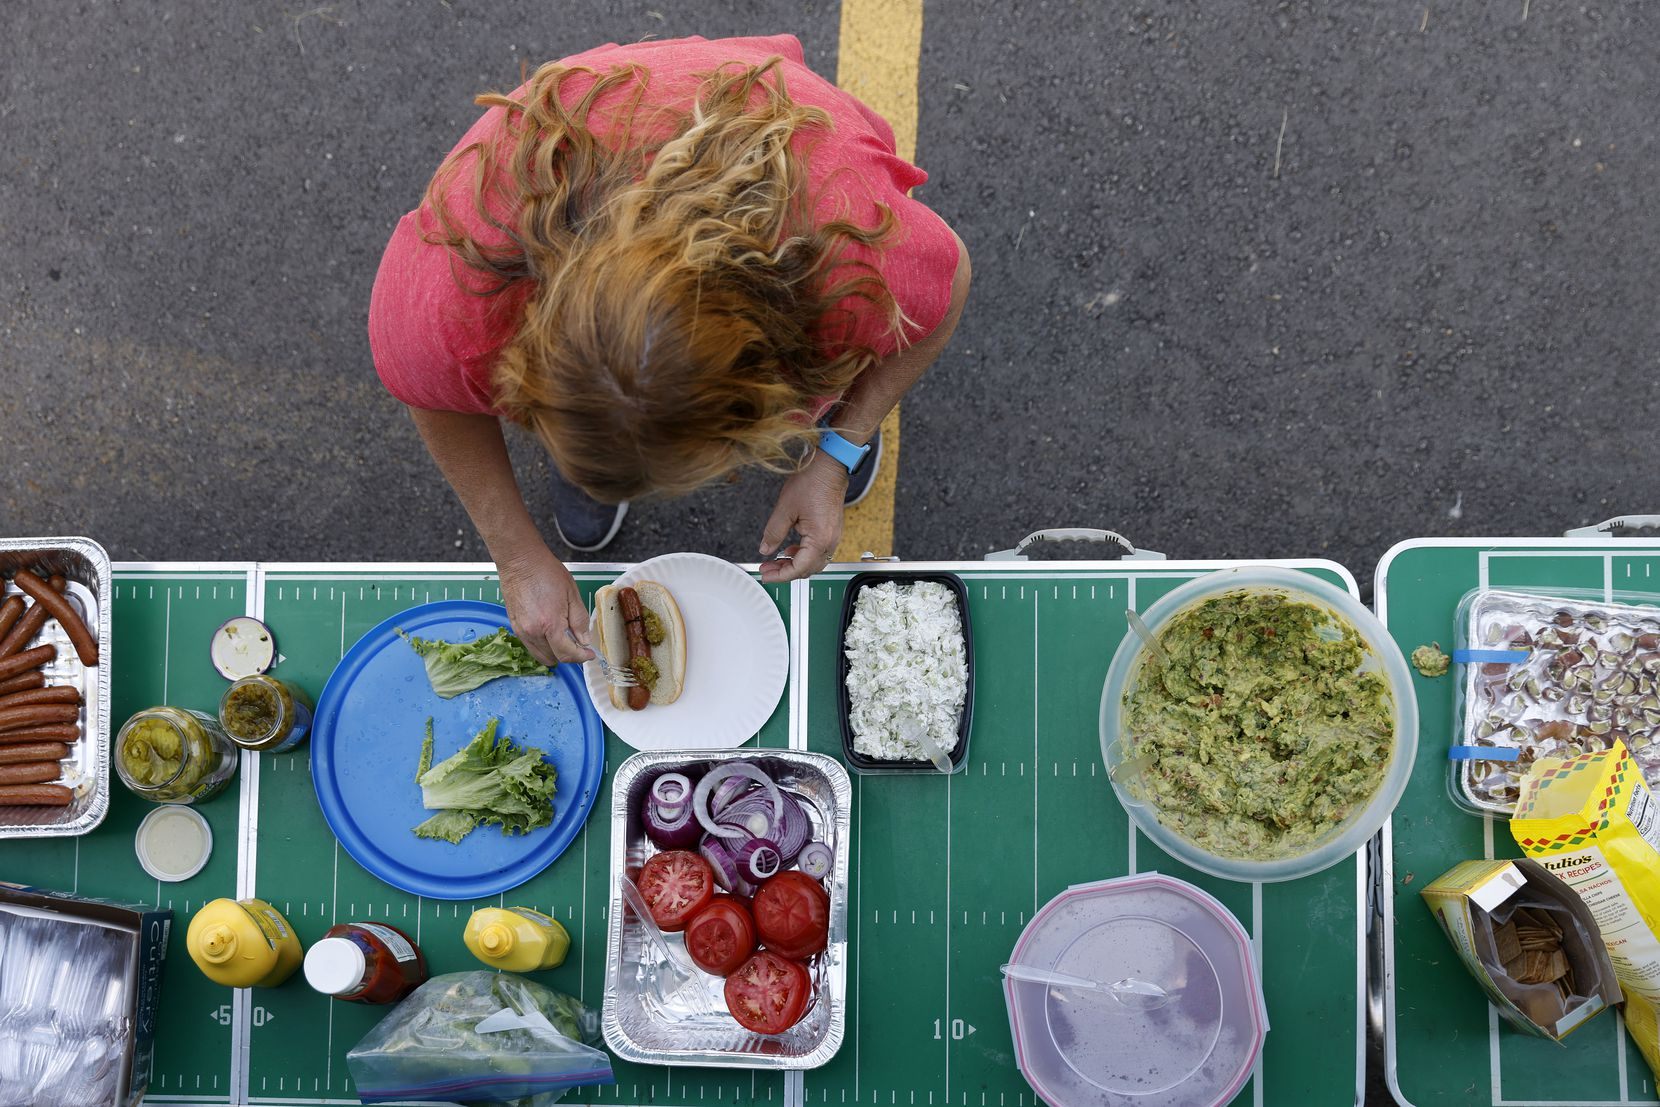 A Texas Rangers fan makes herself a lunch at an Opening Day tailgate party on private property outside of Globe Life Field in Arlington, Monday, April 5, 2021. The Rangers are facing the Toronto Blue Jays in the home opener. (Tom Fox/The Dallas Morning News)